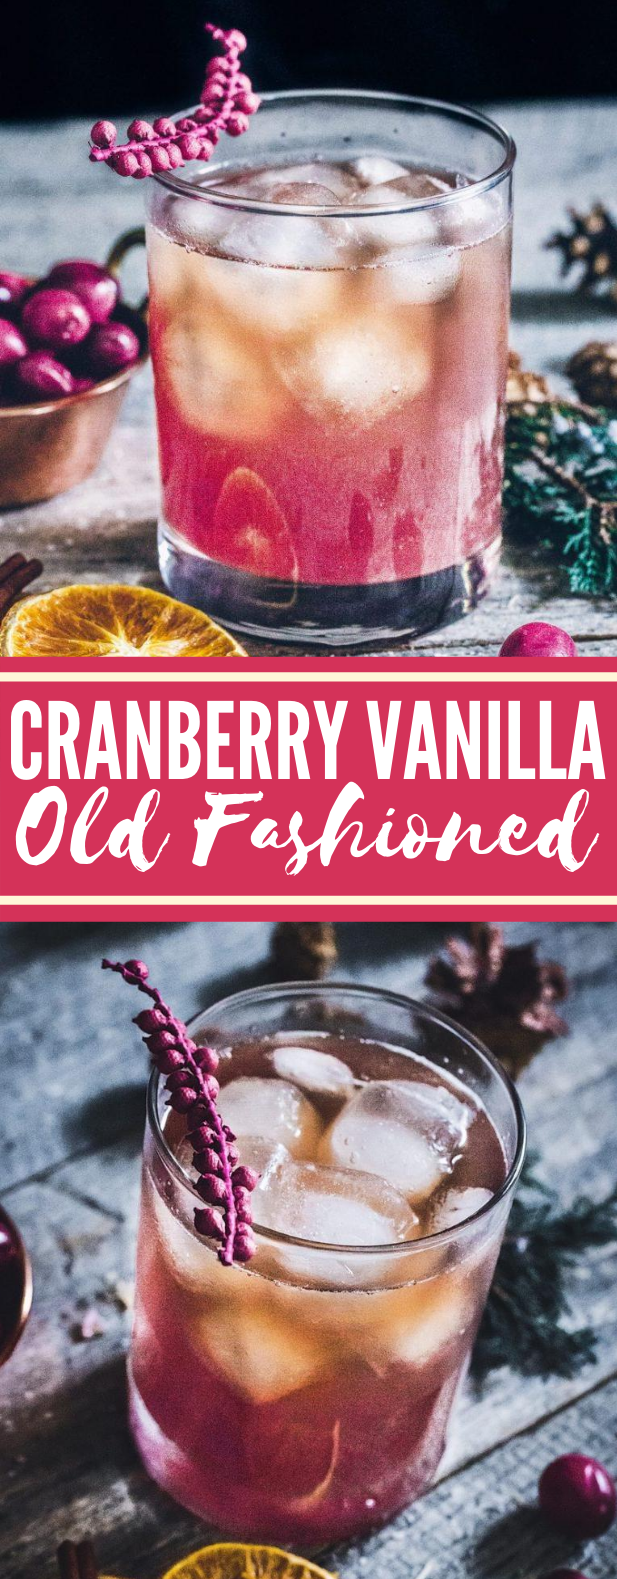 Cranberry Vanilla Old Fashioned #drinks #cocktails #oldfashioned #partydrink #fruit